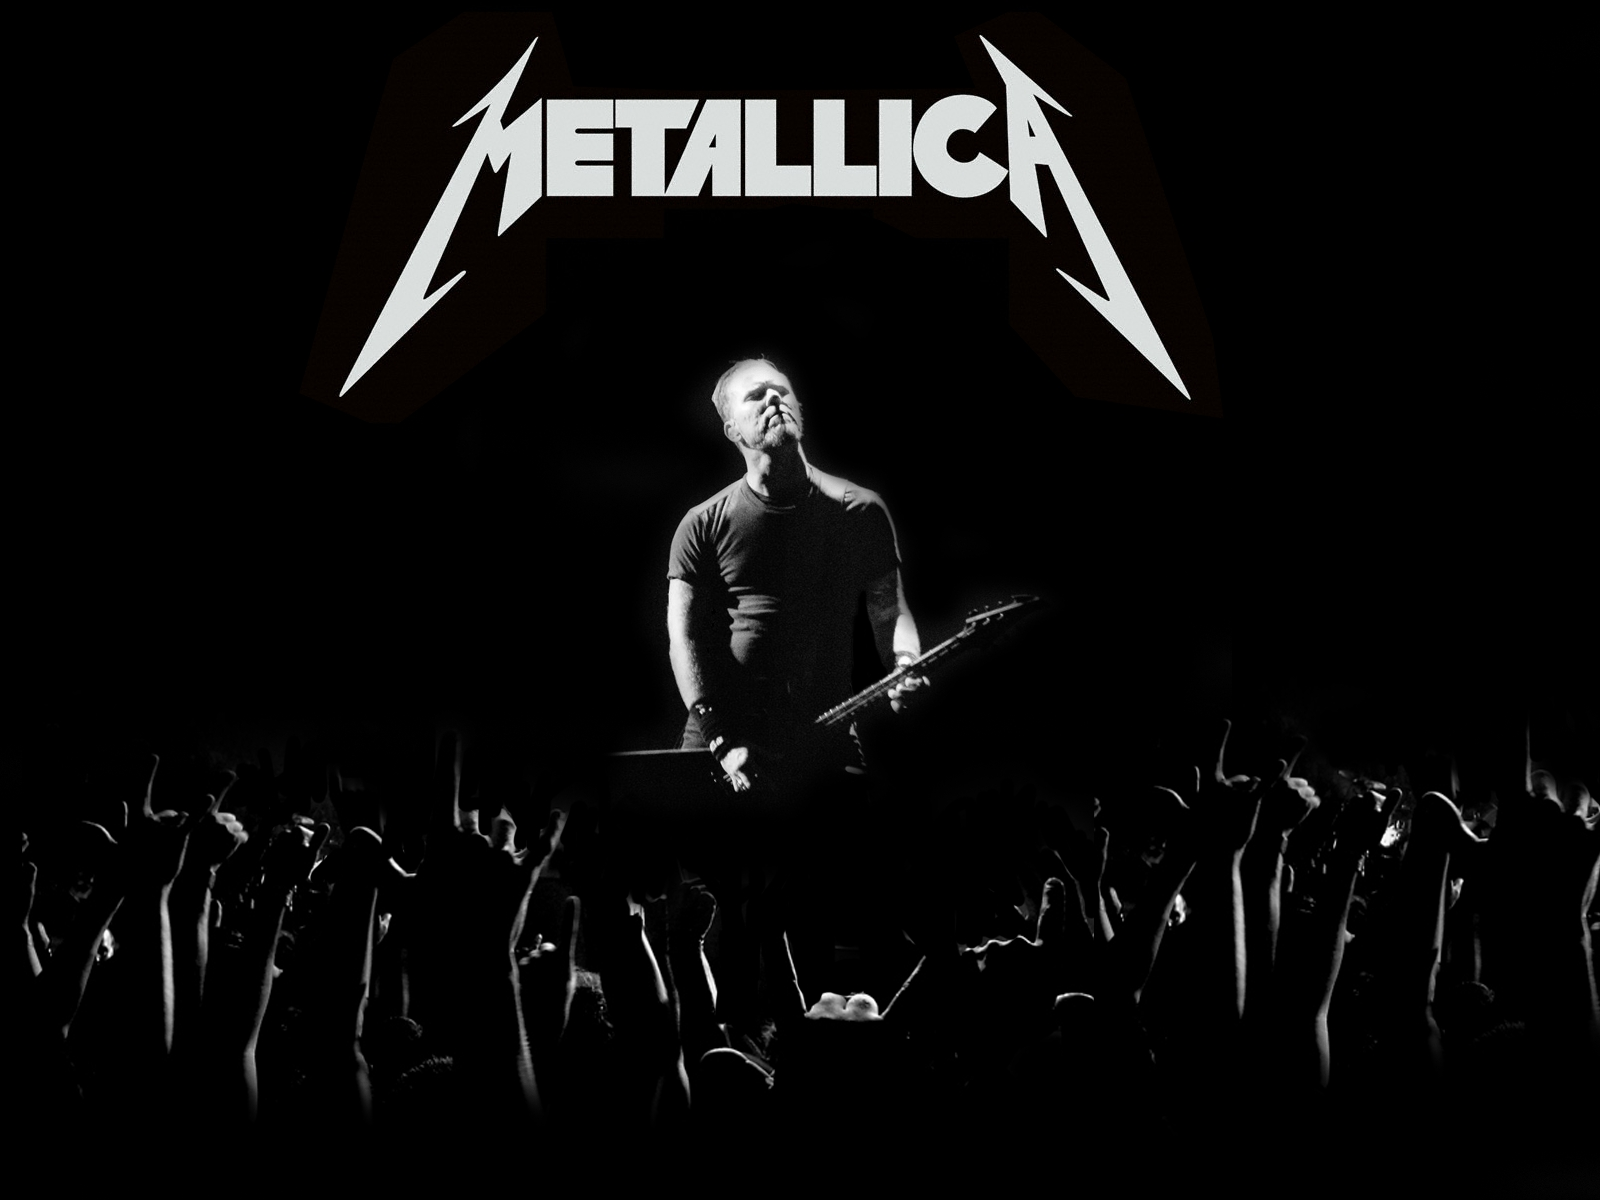 metallica wallpaper hd-#14